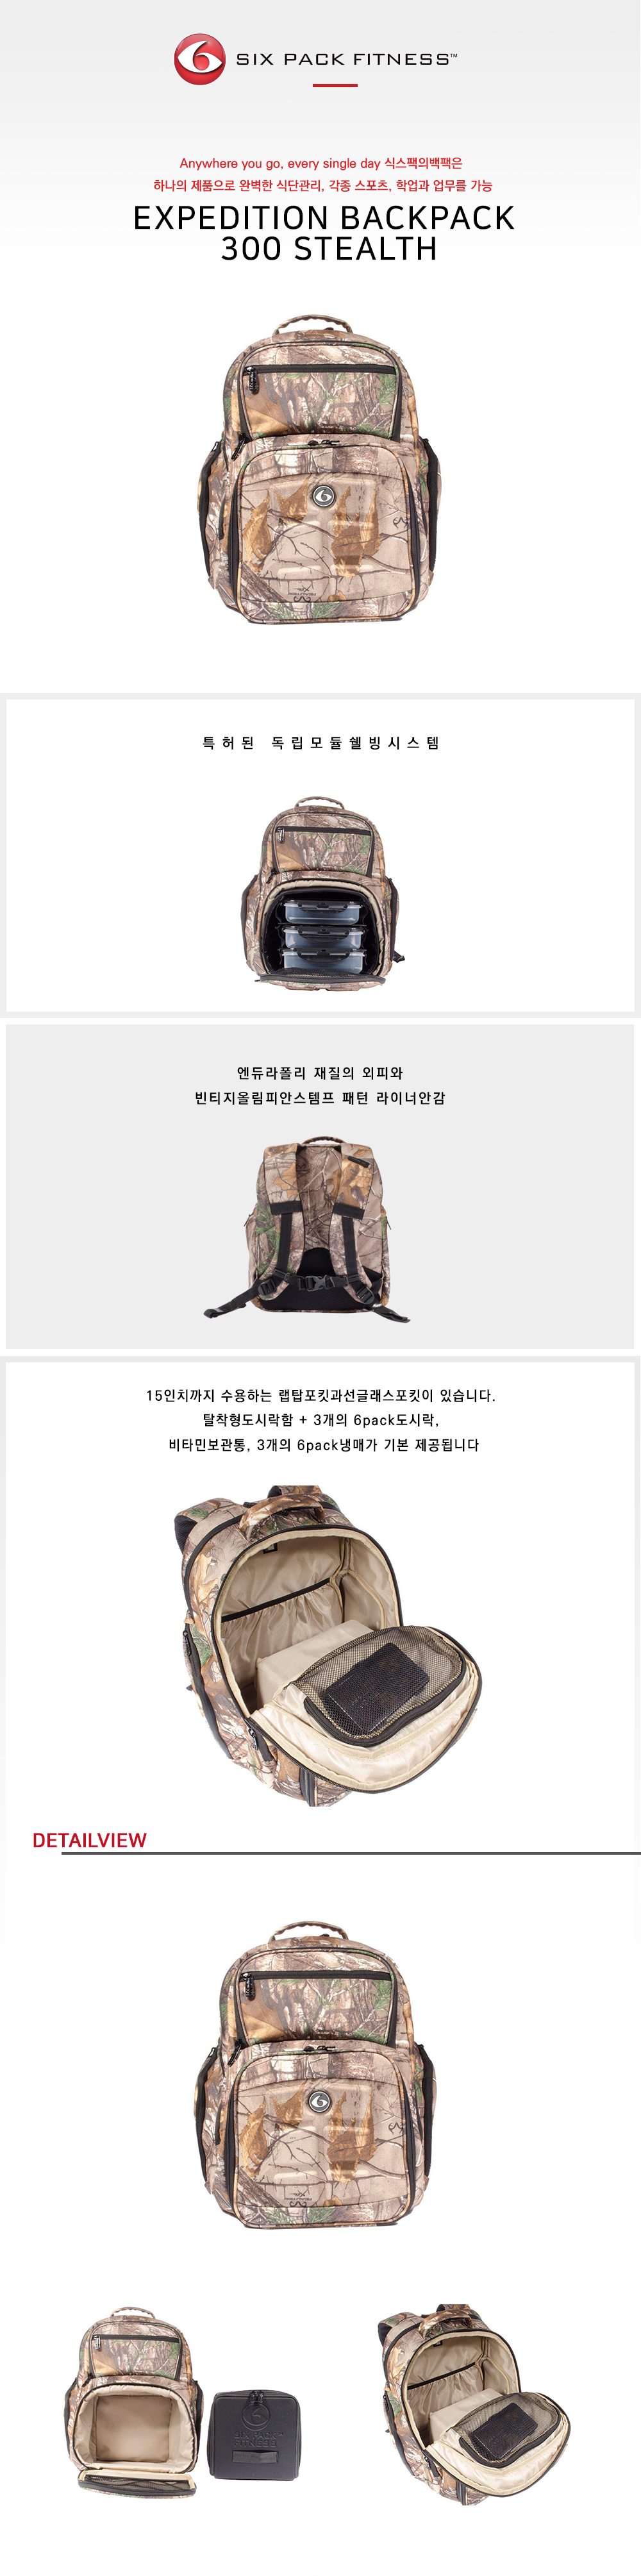 EXPEDITION-BACKPACK-300-STEALTH1.jpg